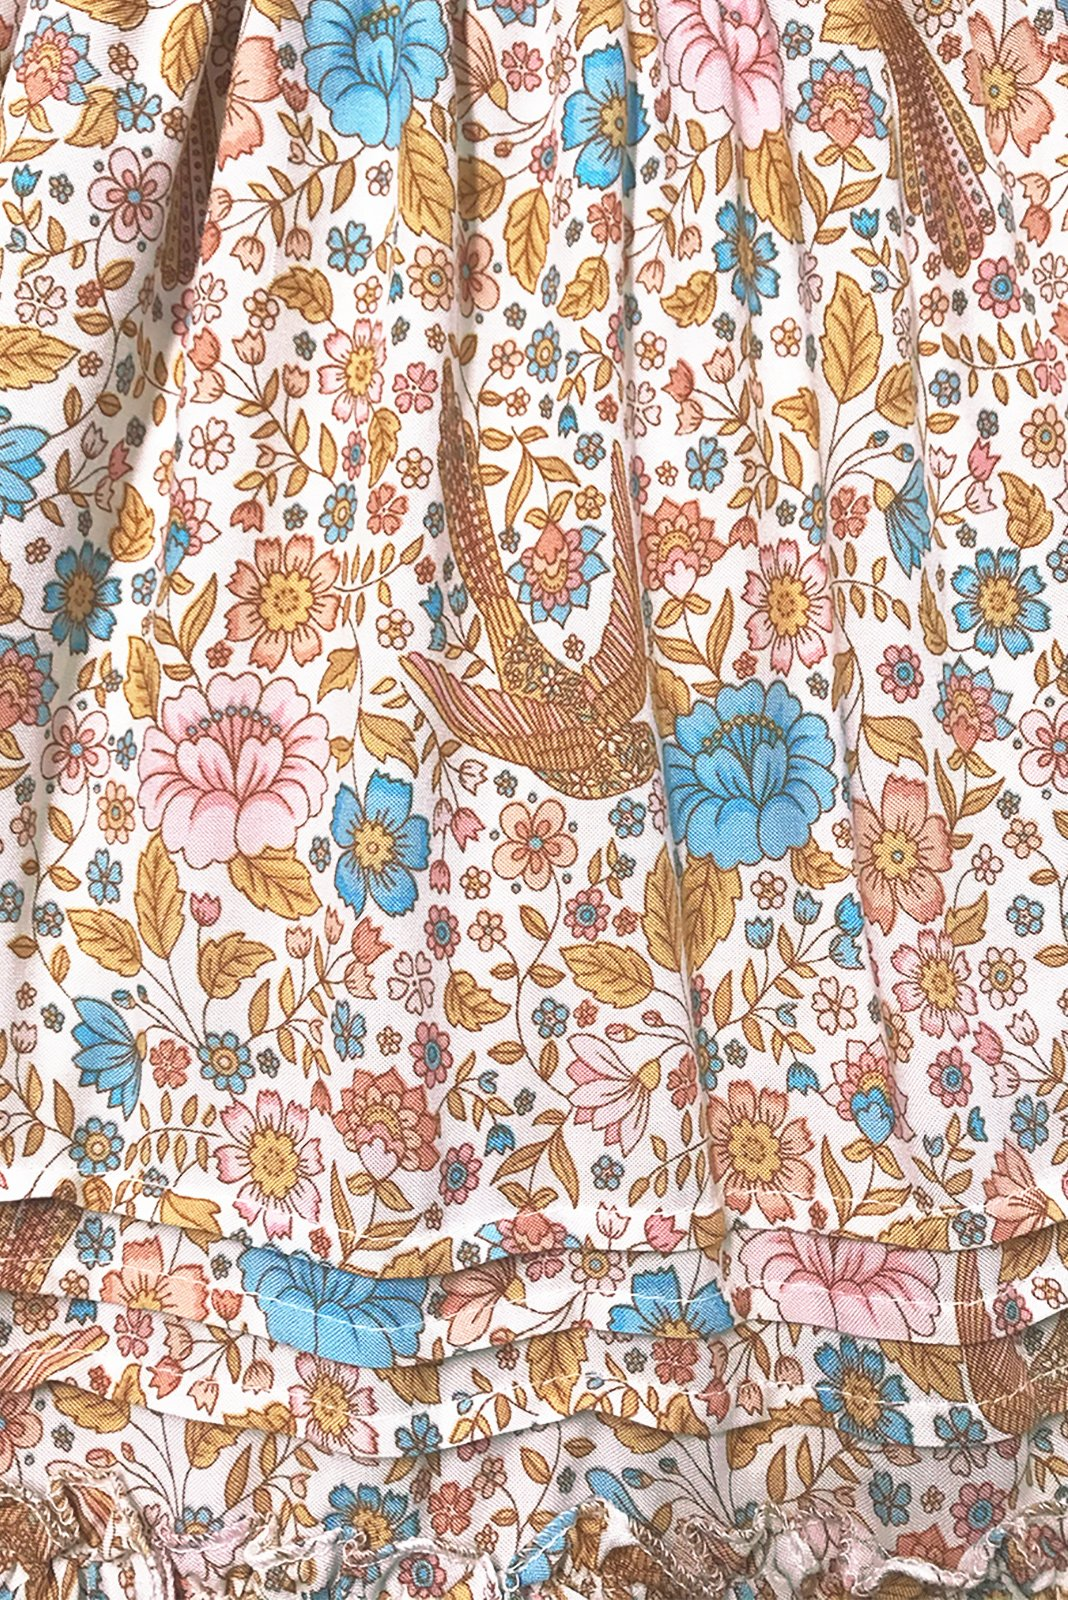 Dorothy Cream Midi Dress's fabric swatch featuring cream base with folk/bohemian print in pinks, blue, beige and amber tones in woven 100% rayon.